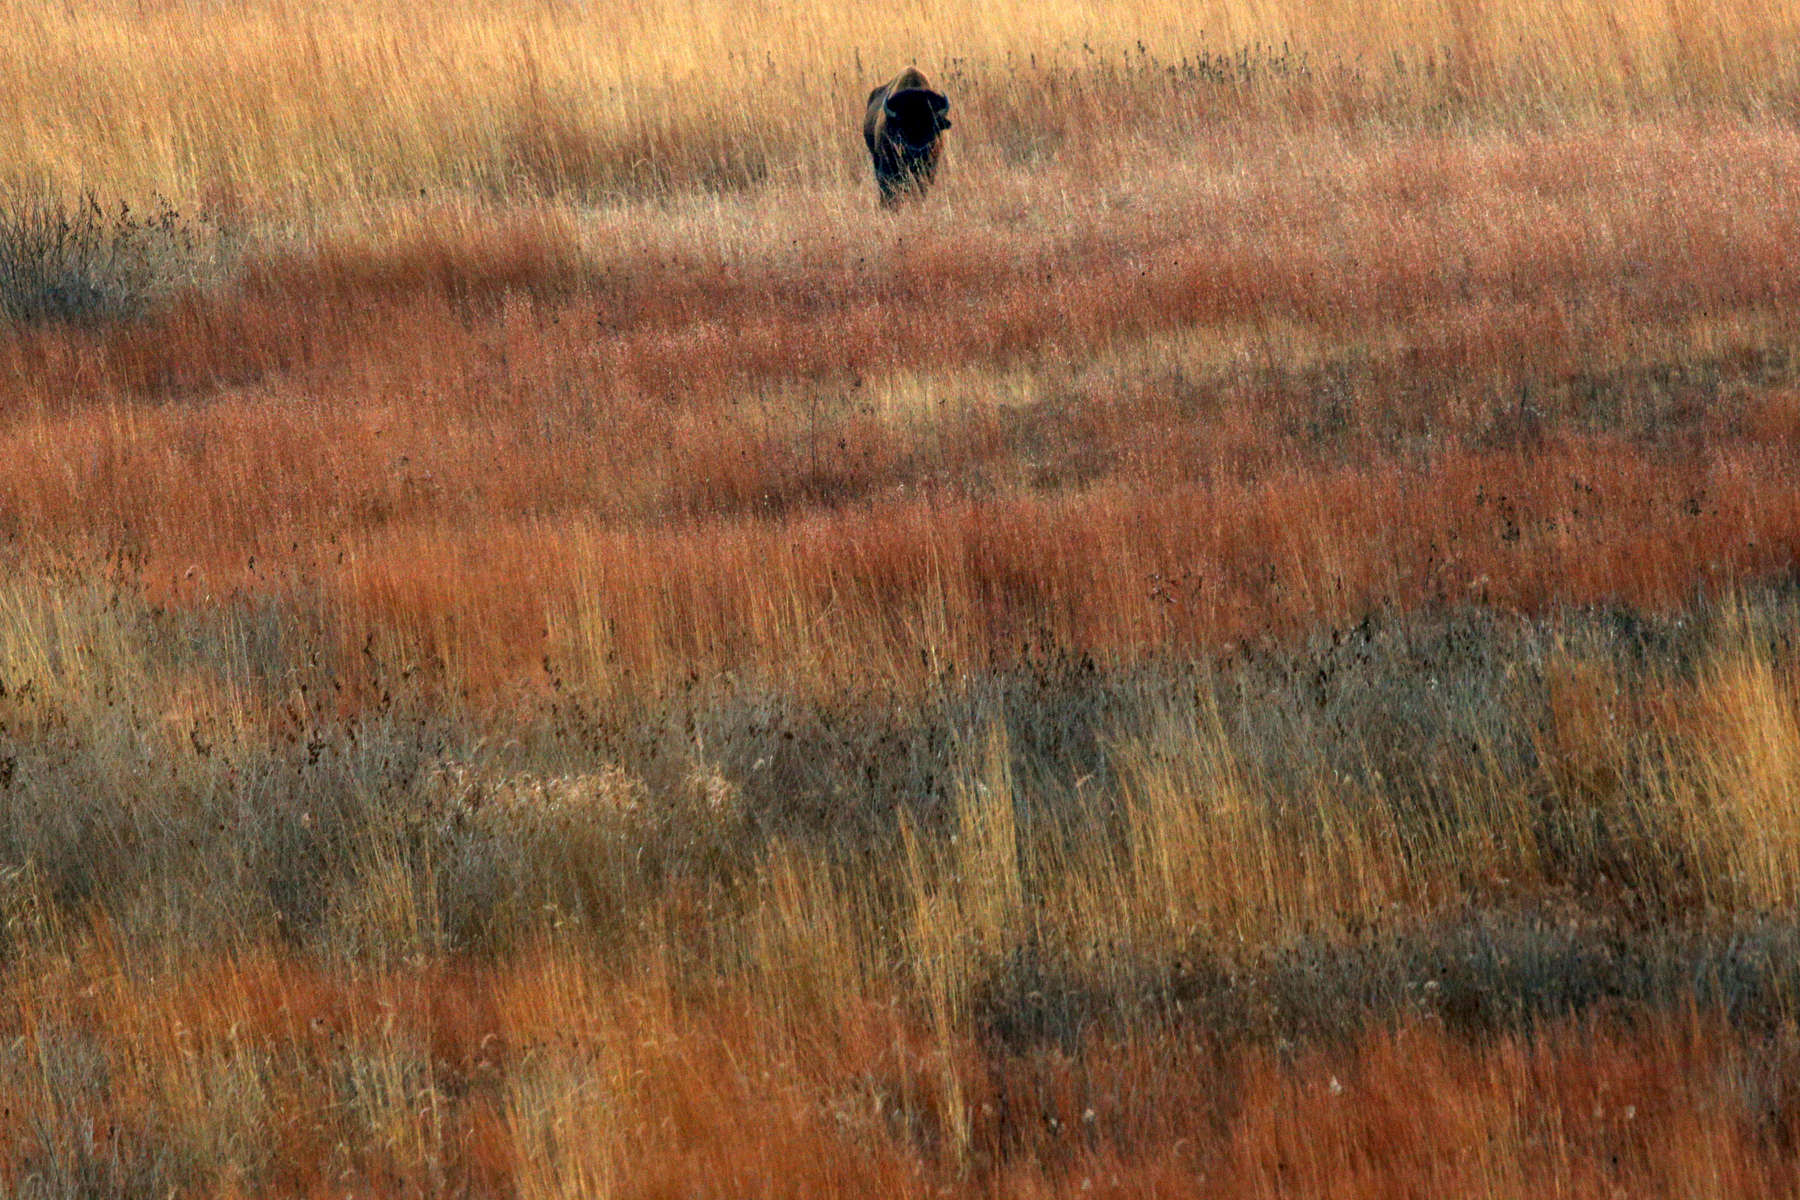 A lone bison stood among the native grasses as he led the herd of about thirty animals into the corrals in the late evening at the Nachusa Grasslands.